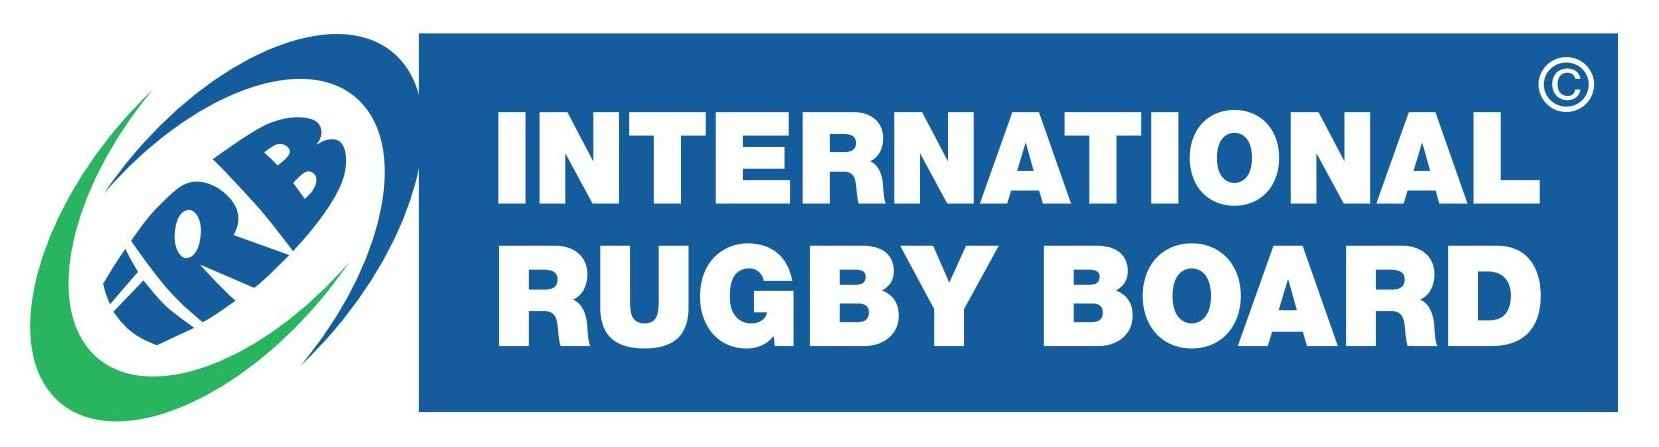 International Rugby Board (IRB) Logo [EPS File] png